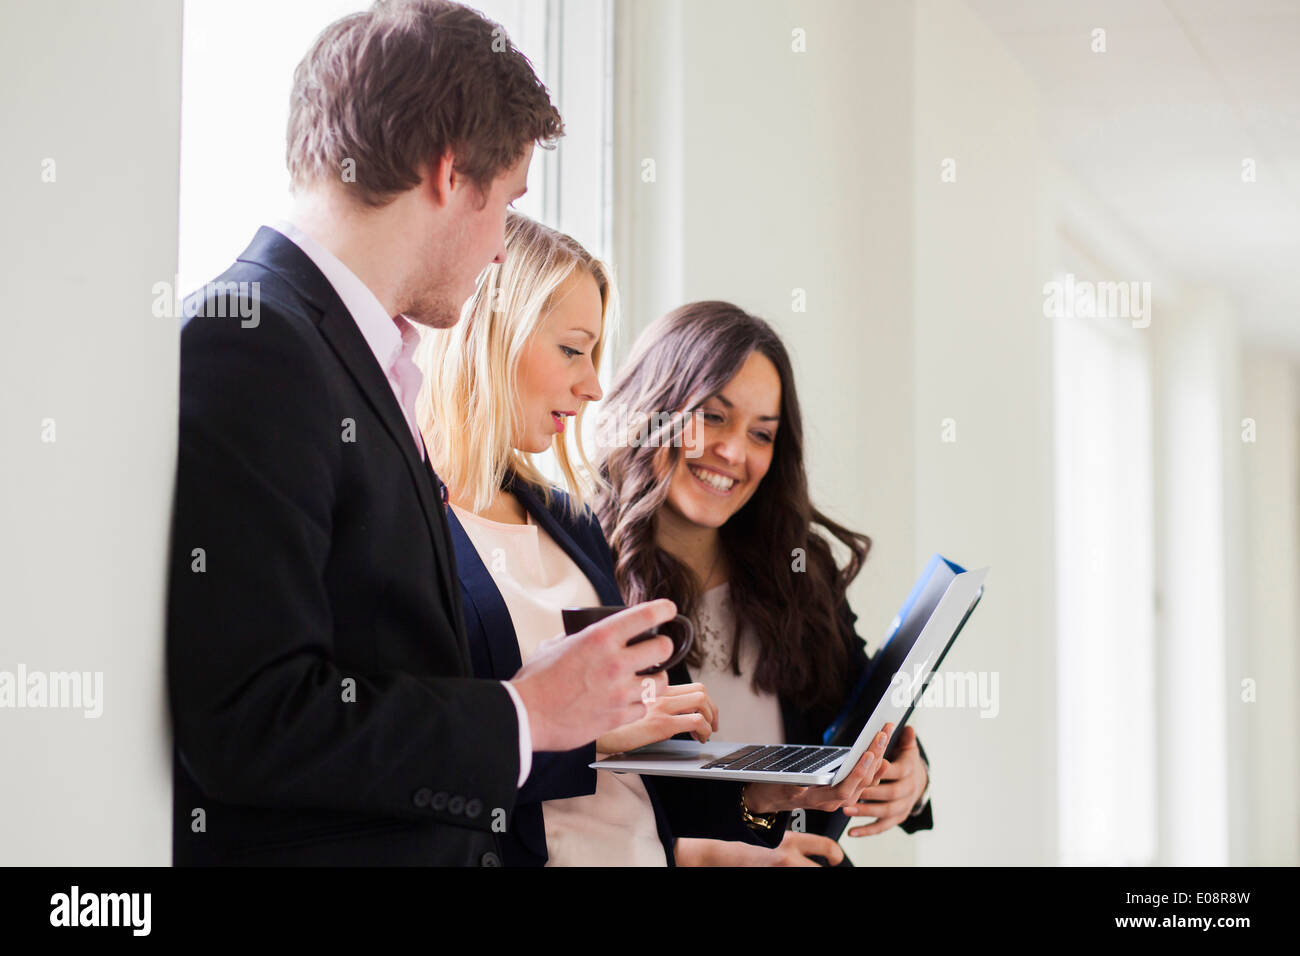 Business colleagues using laptop while standing in office - Stock Image